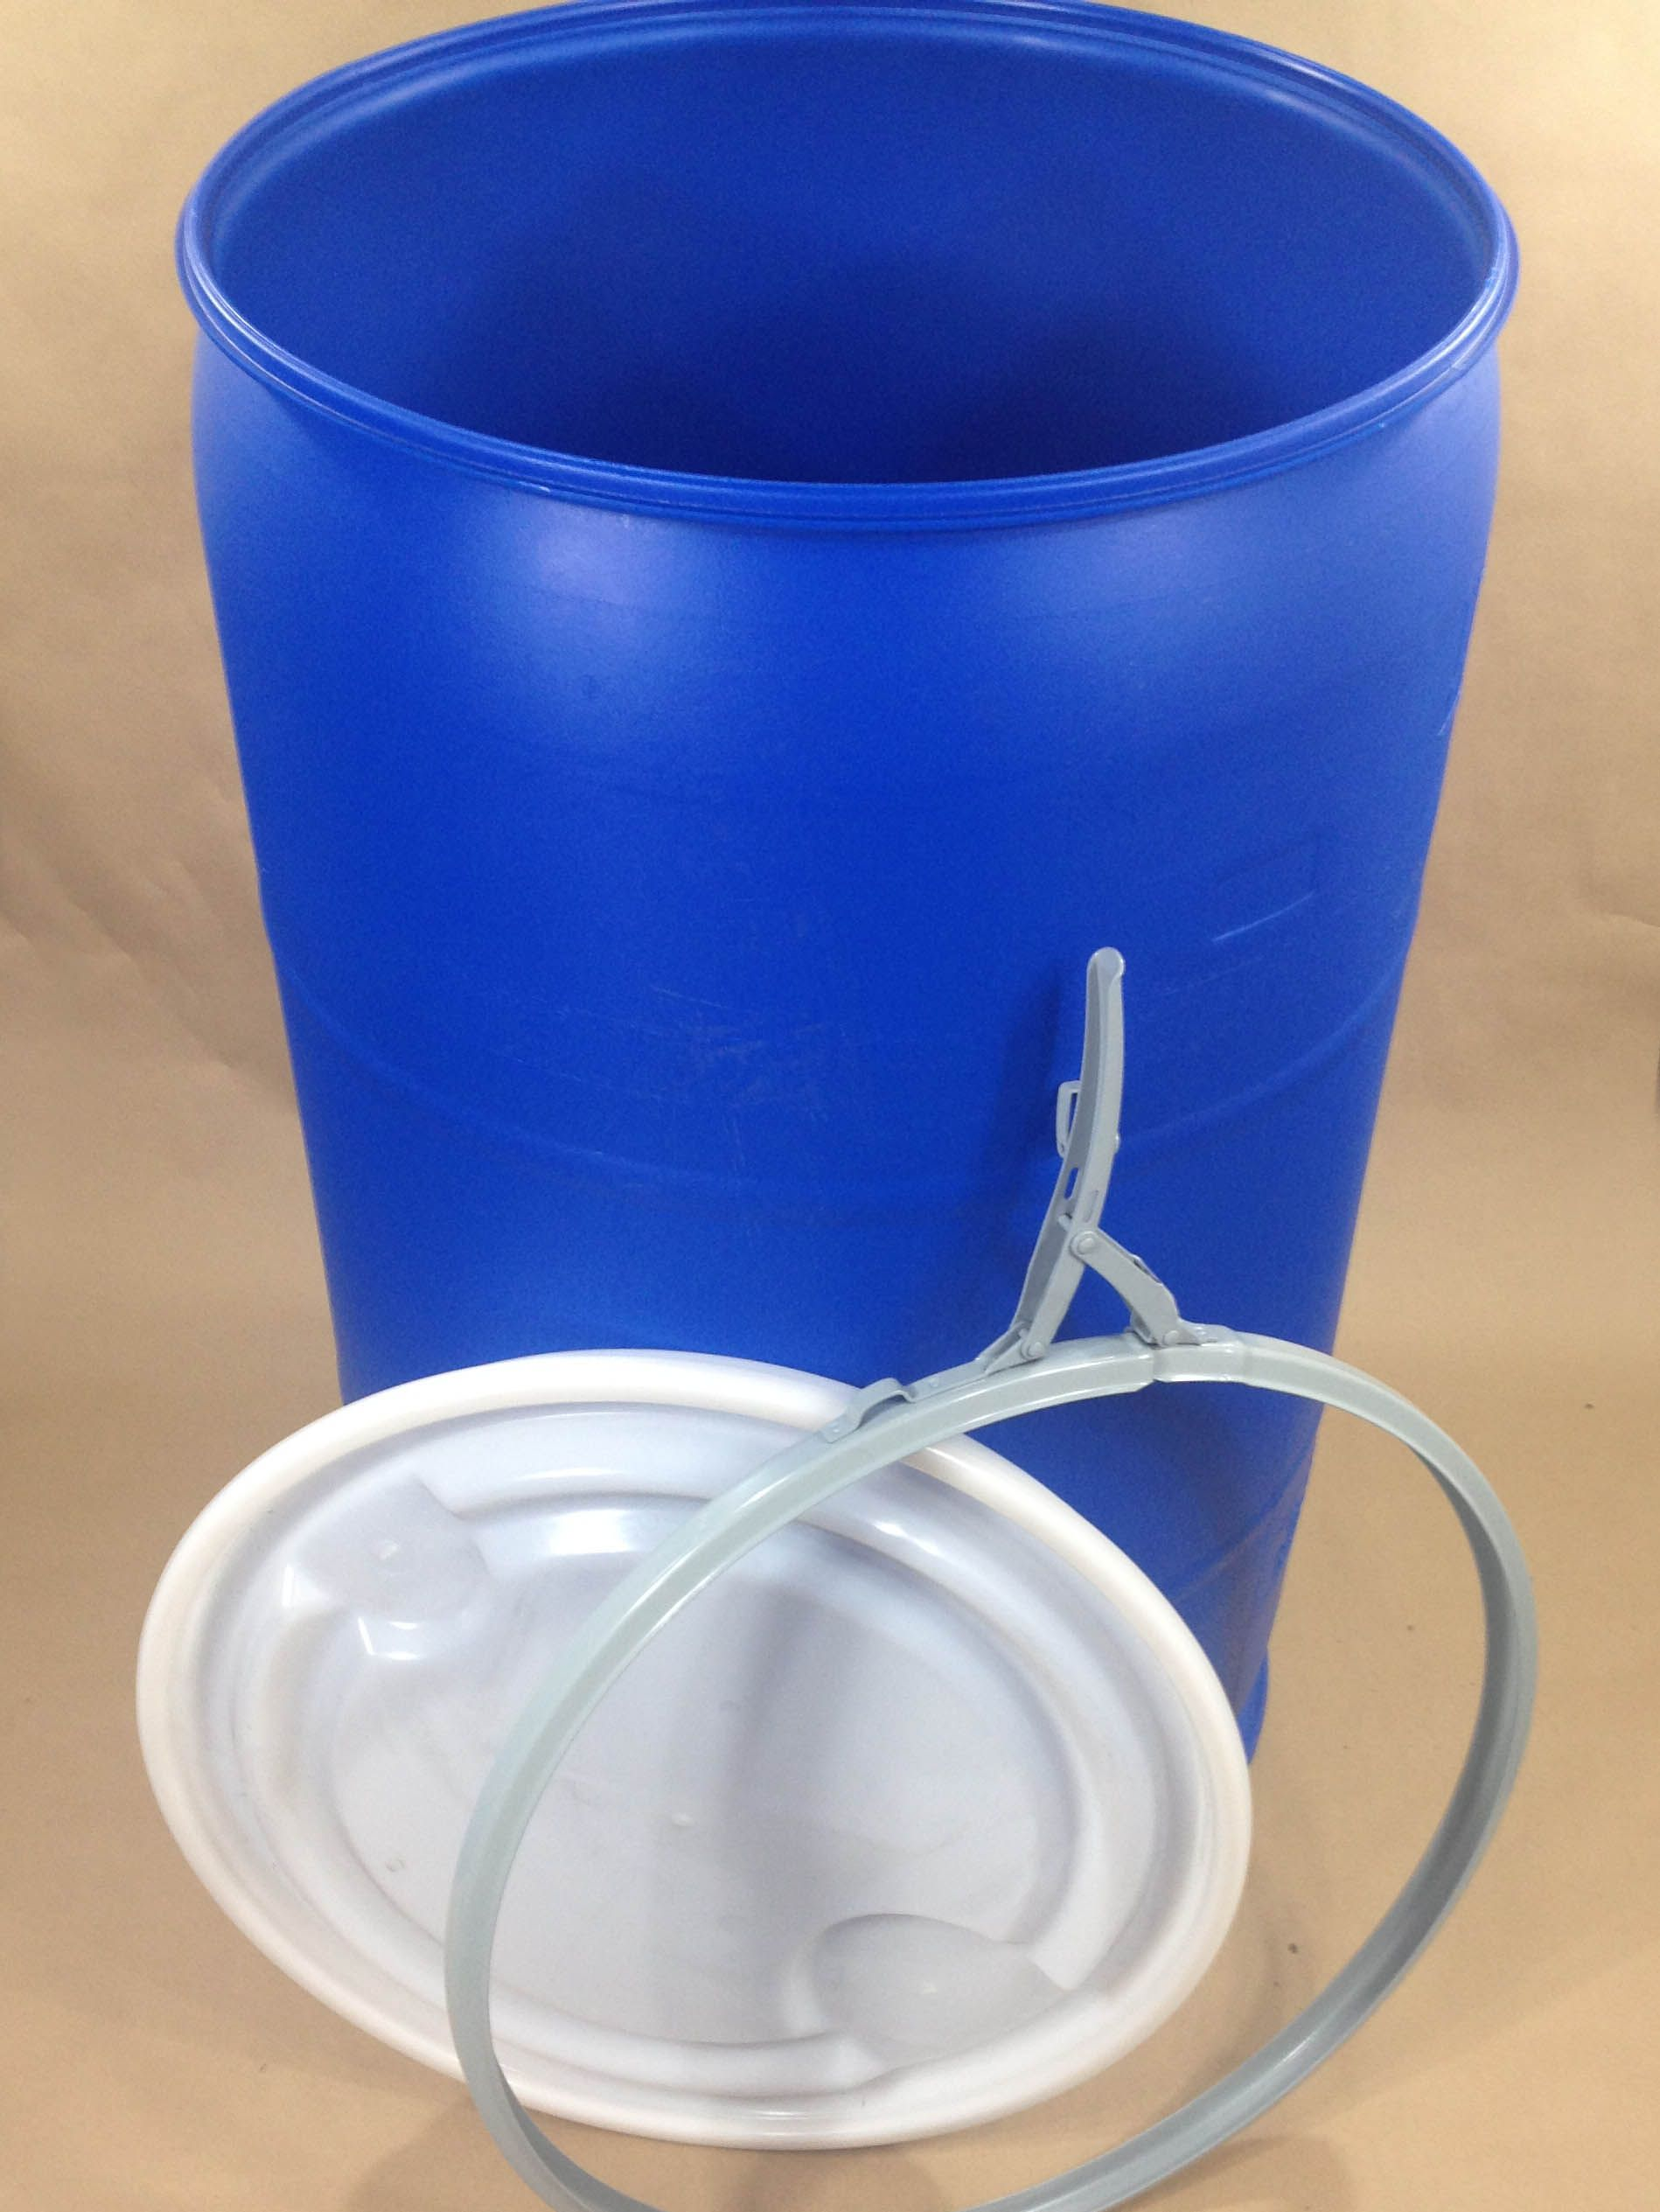 Water Barrels Yankee Containers Drums Pails Cans Bottles Jars Jugs And Boxes Plastic Drums 55 Gallon Plastic Drum Water Barrel